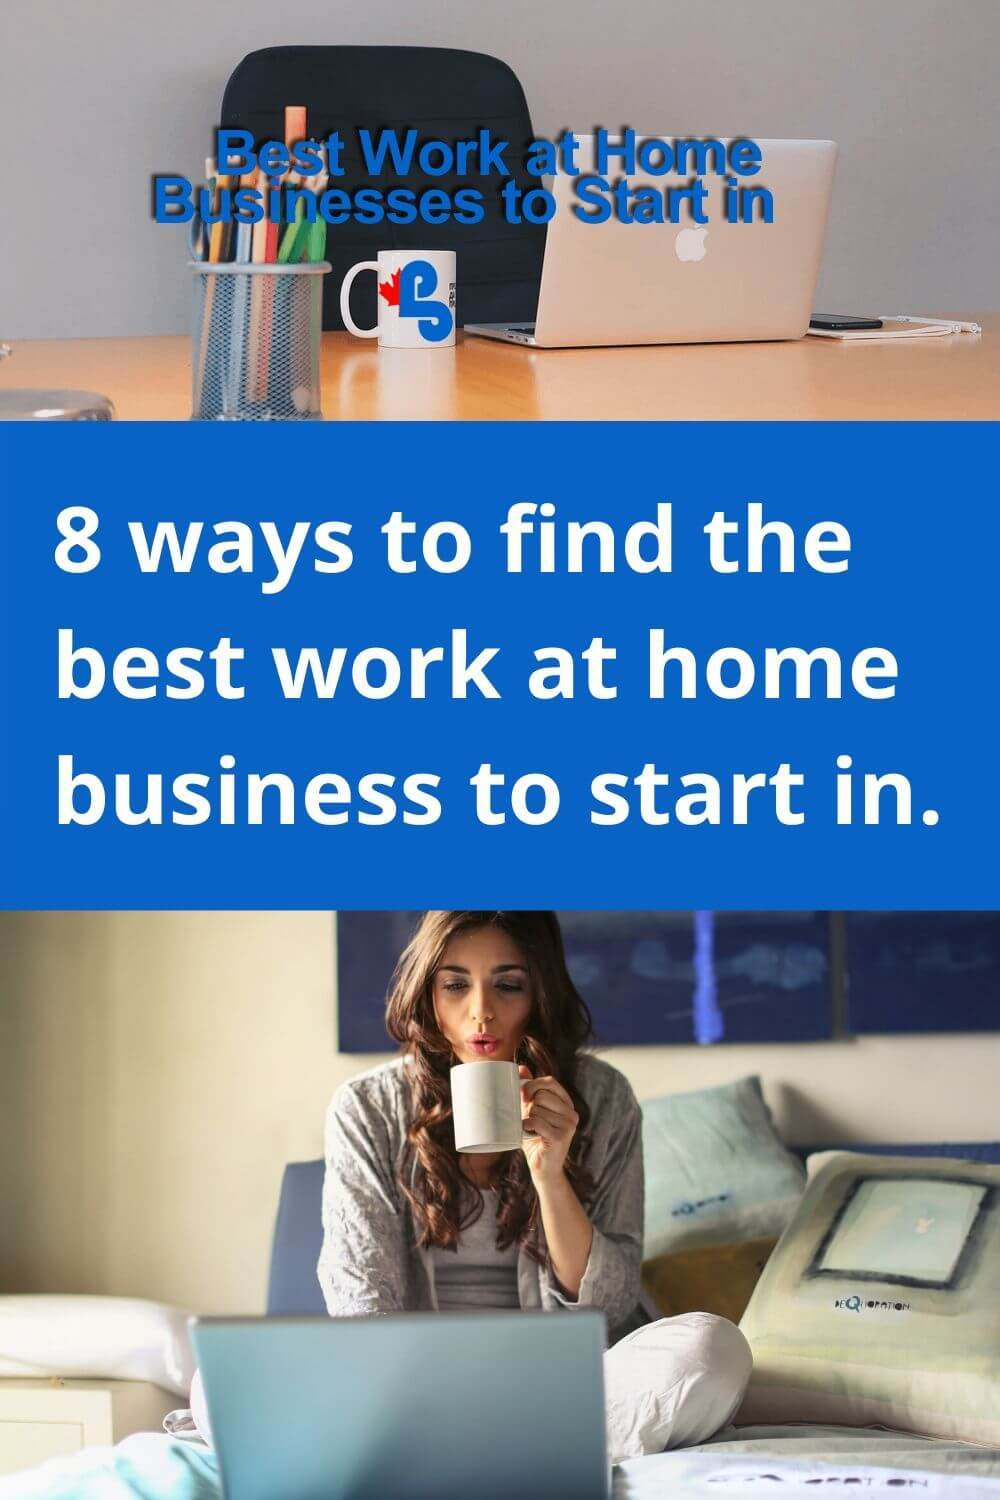 8 ways to find the best work at home business to start in